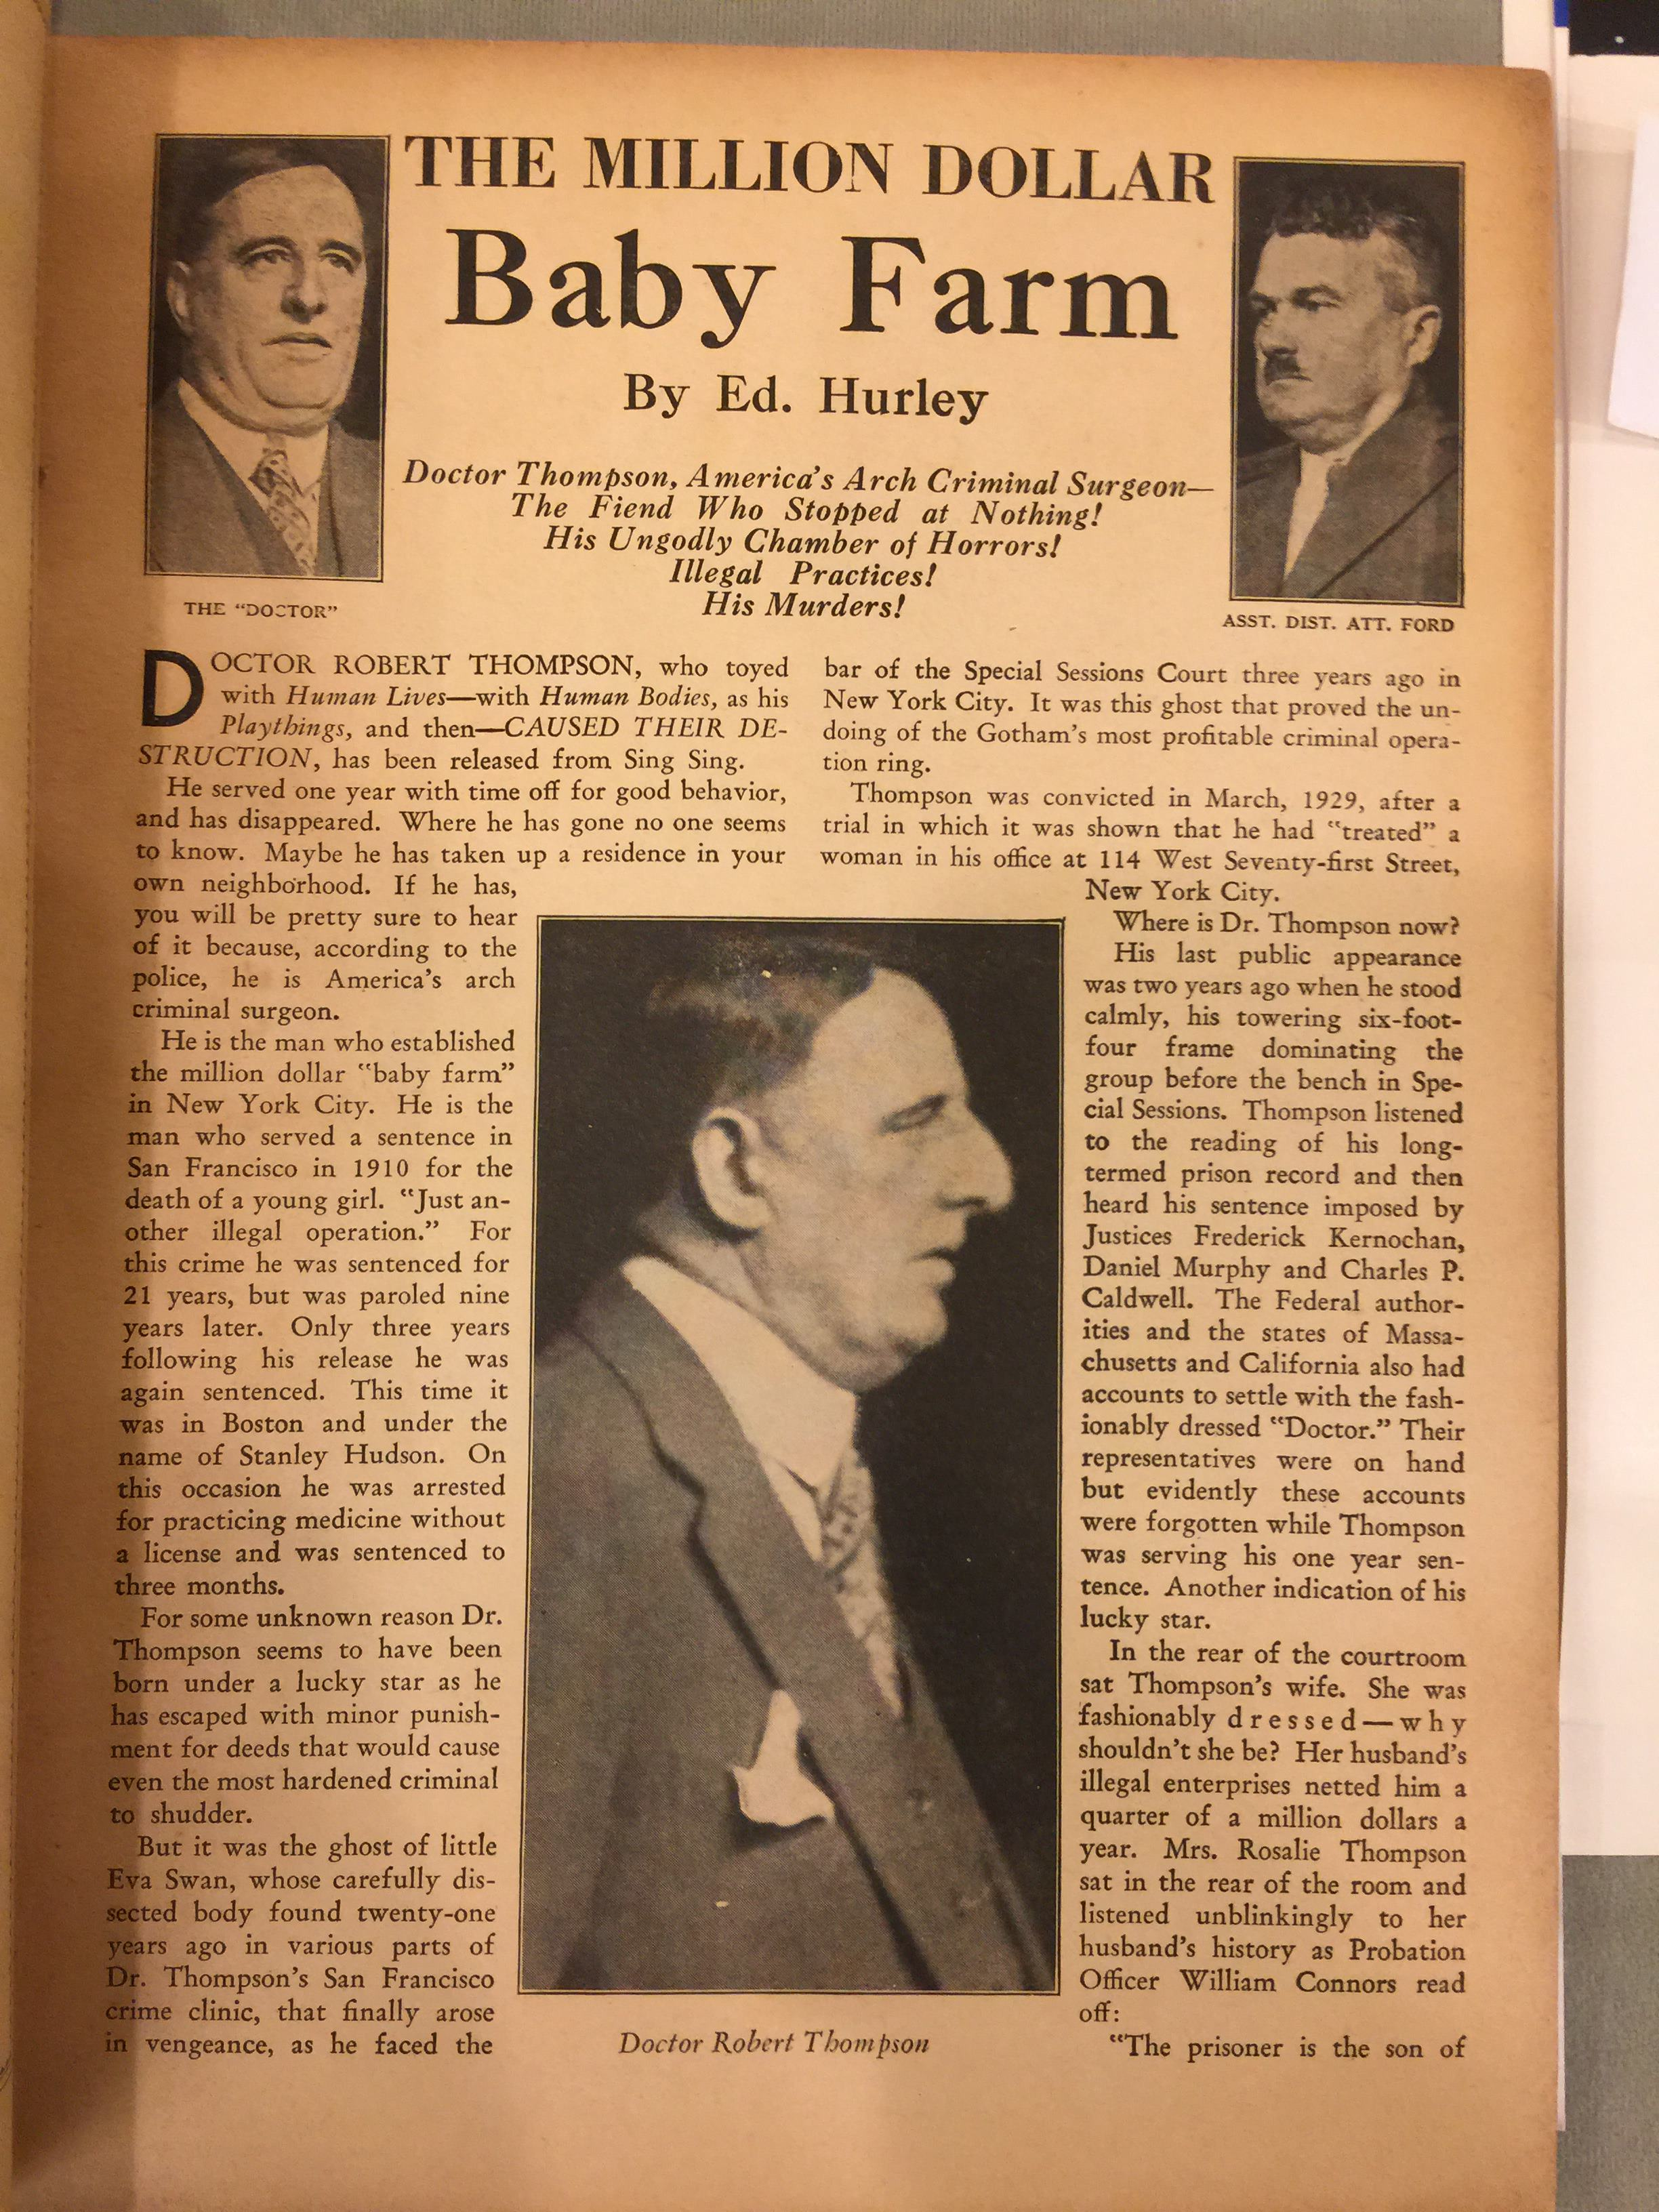 The million dollar baby farm, from Medical Horrors #1